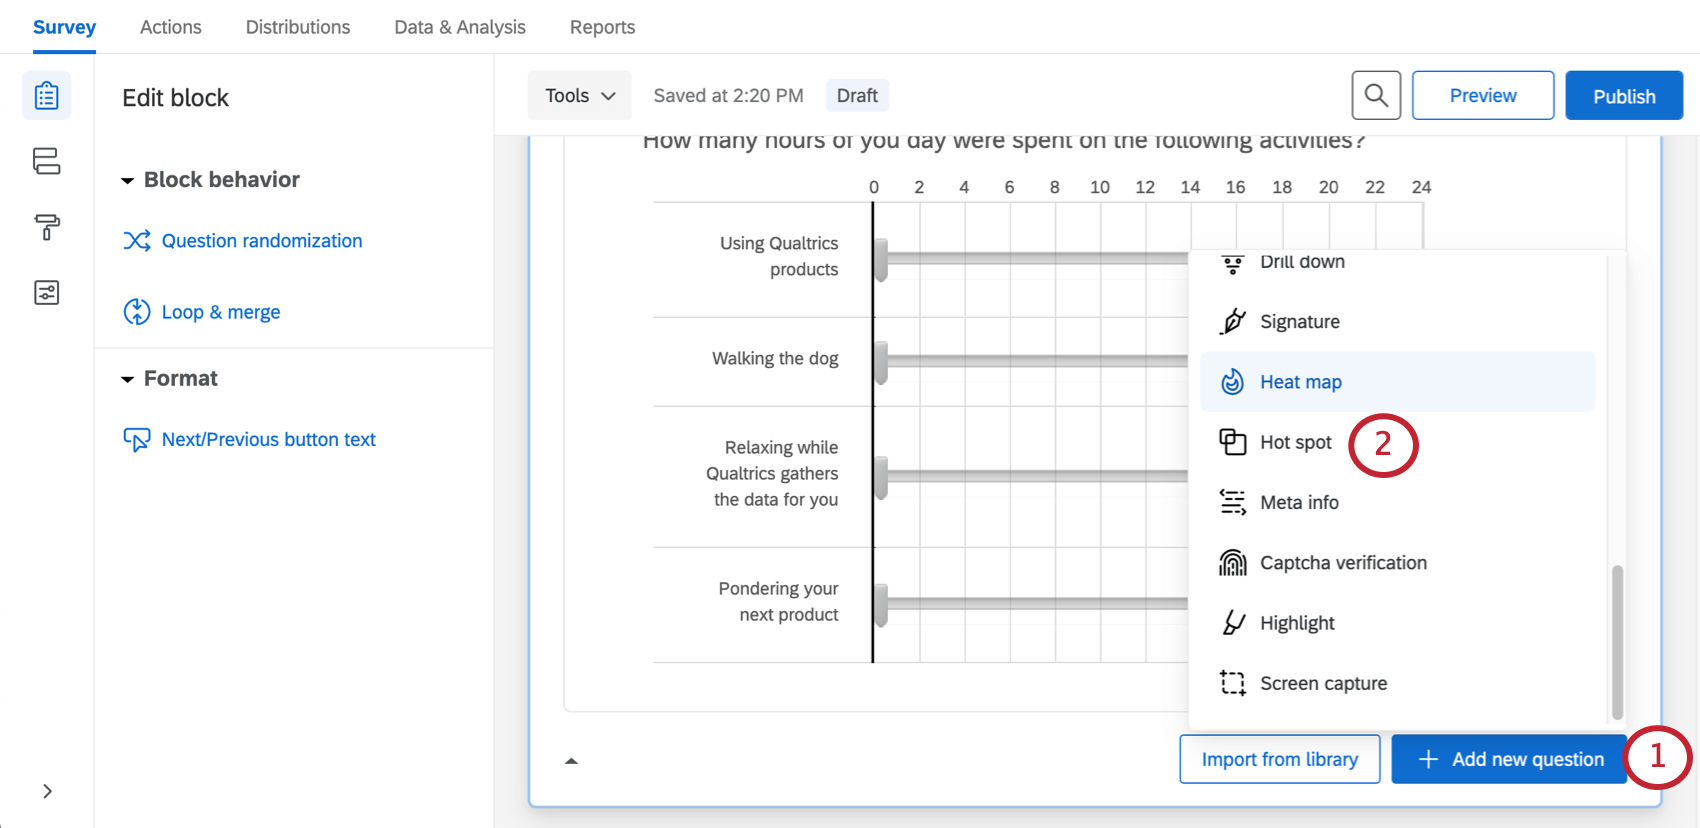 Blue add new button bottom-right of block, once clicked has menu with question types listed